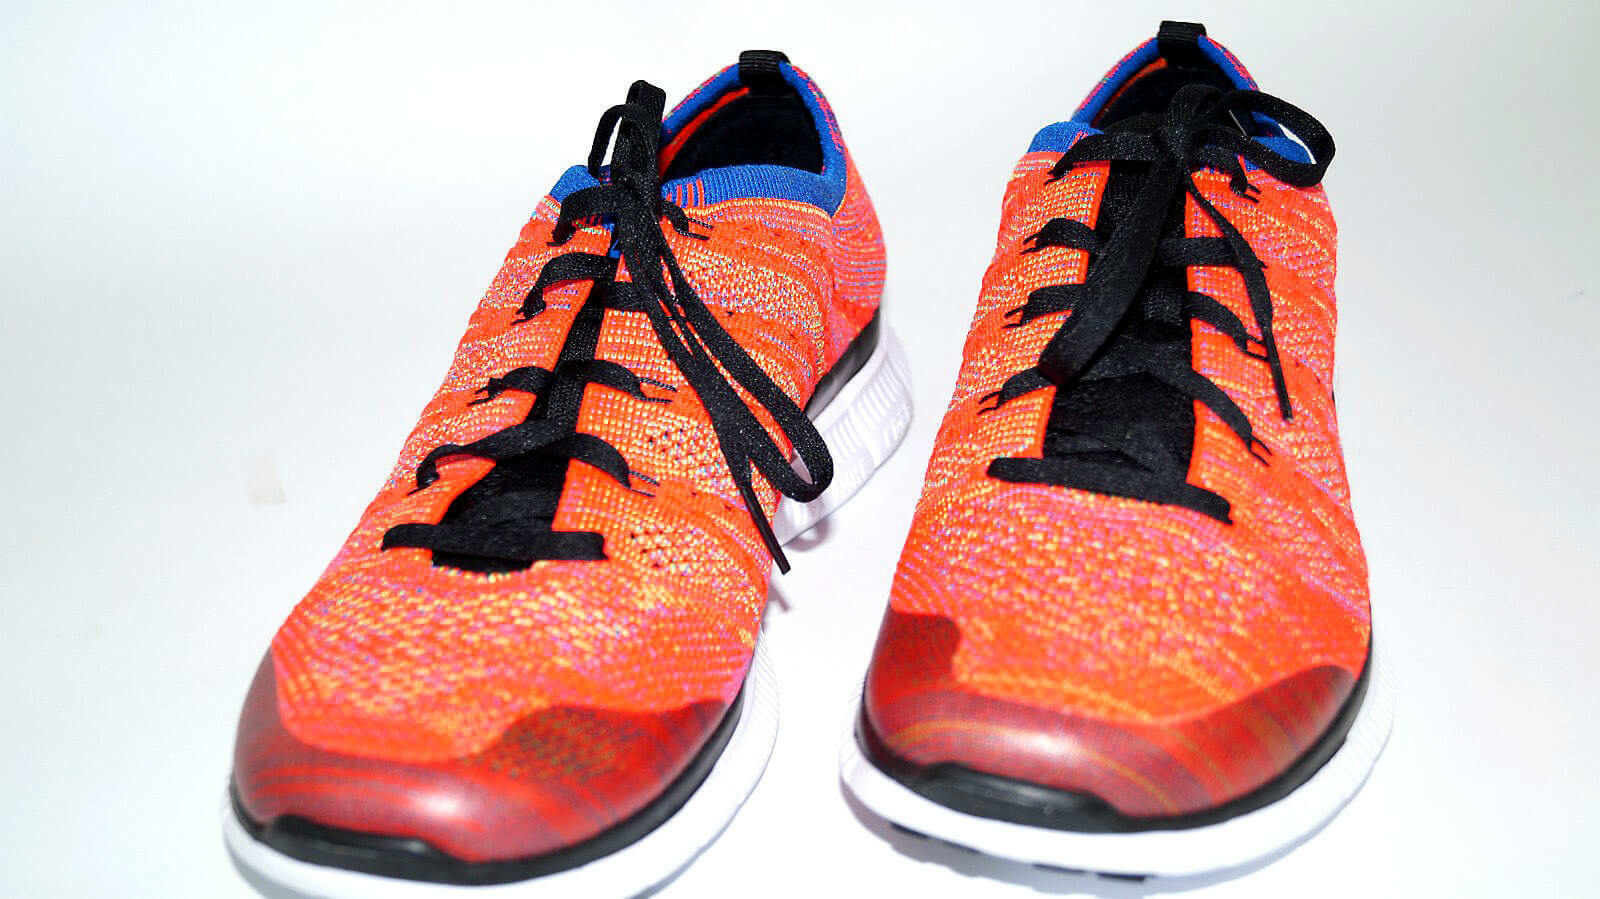 NEUNike Free Flyknit NSW neon orange UK Damenschuh sneaker 42.5 UK orange 8 US 9 Sneaker 21e0f2